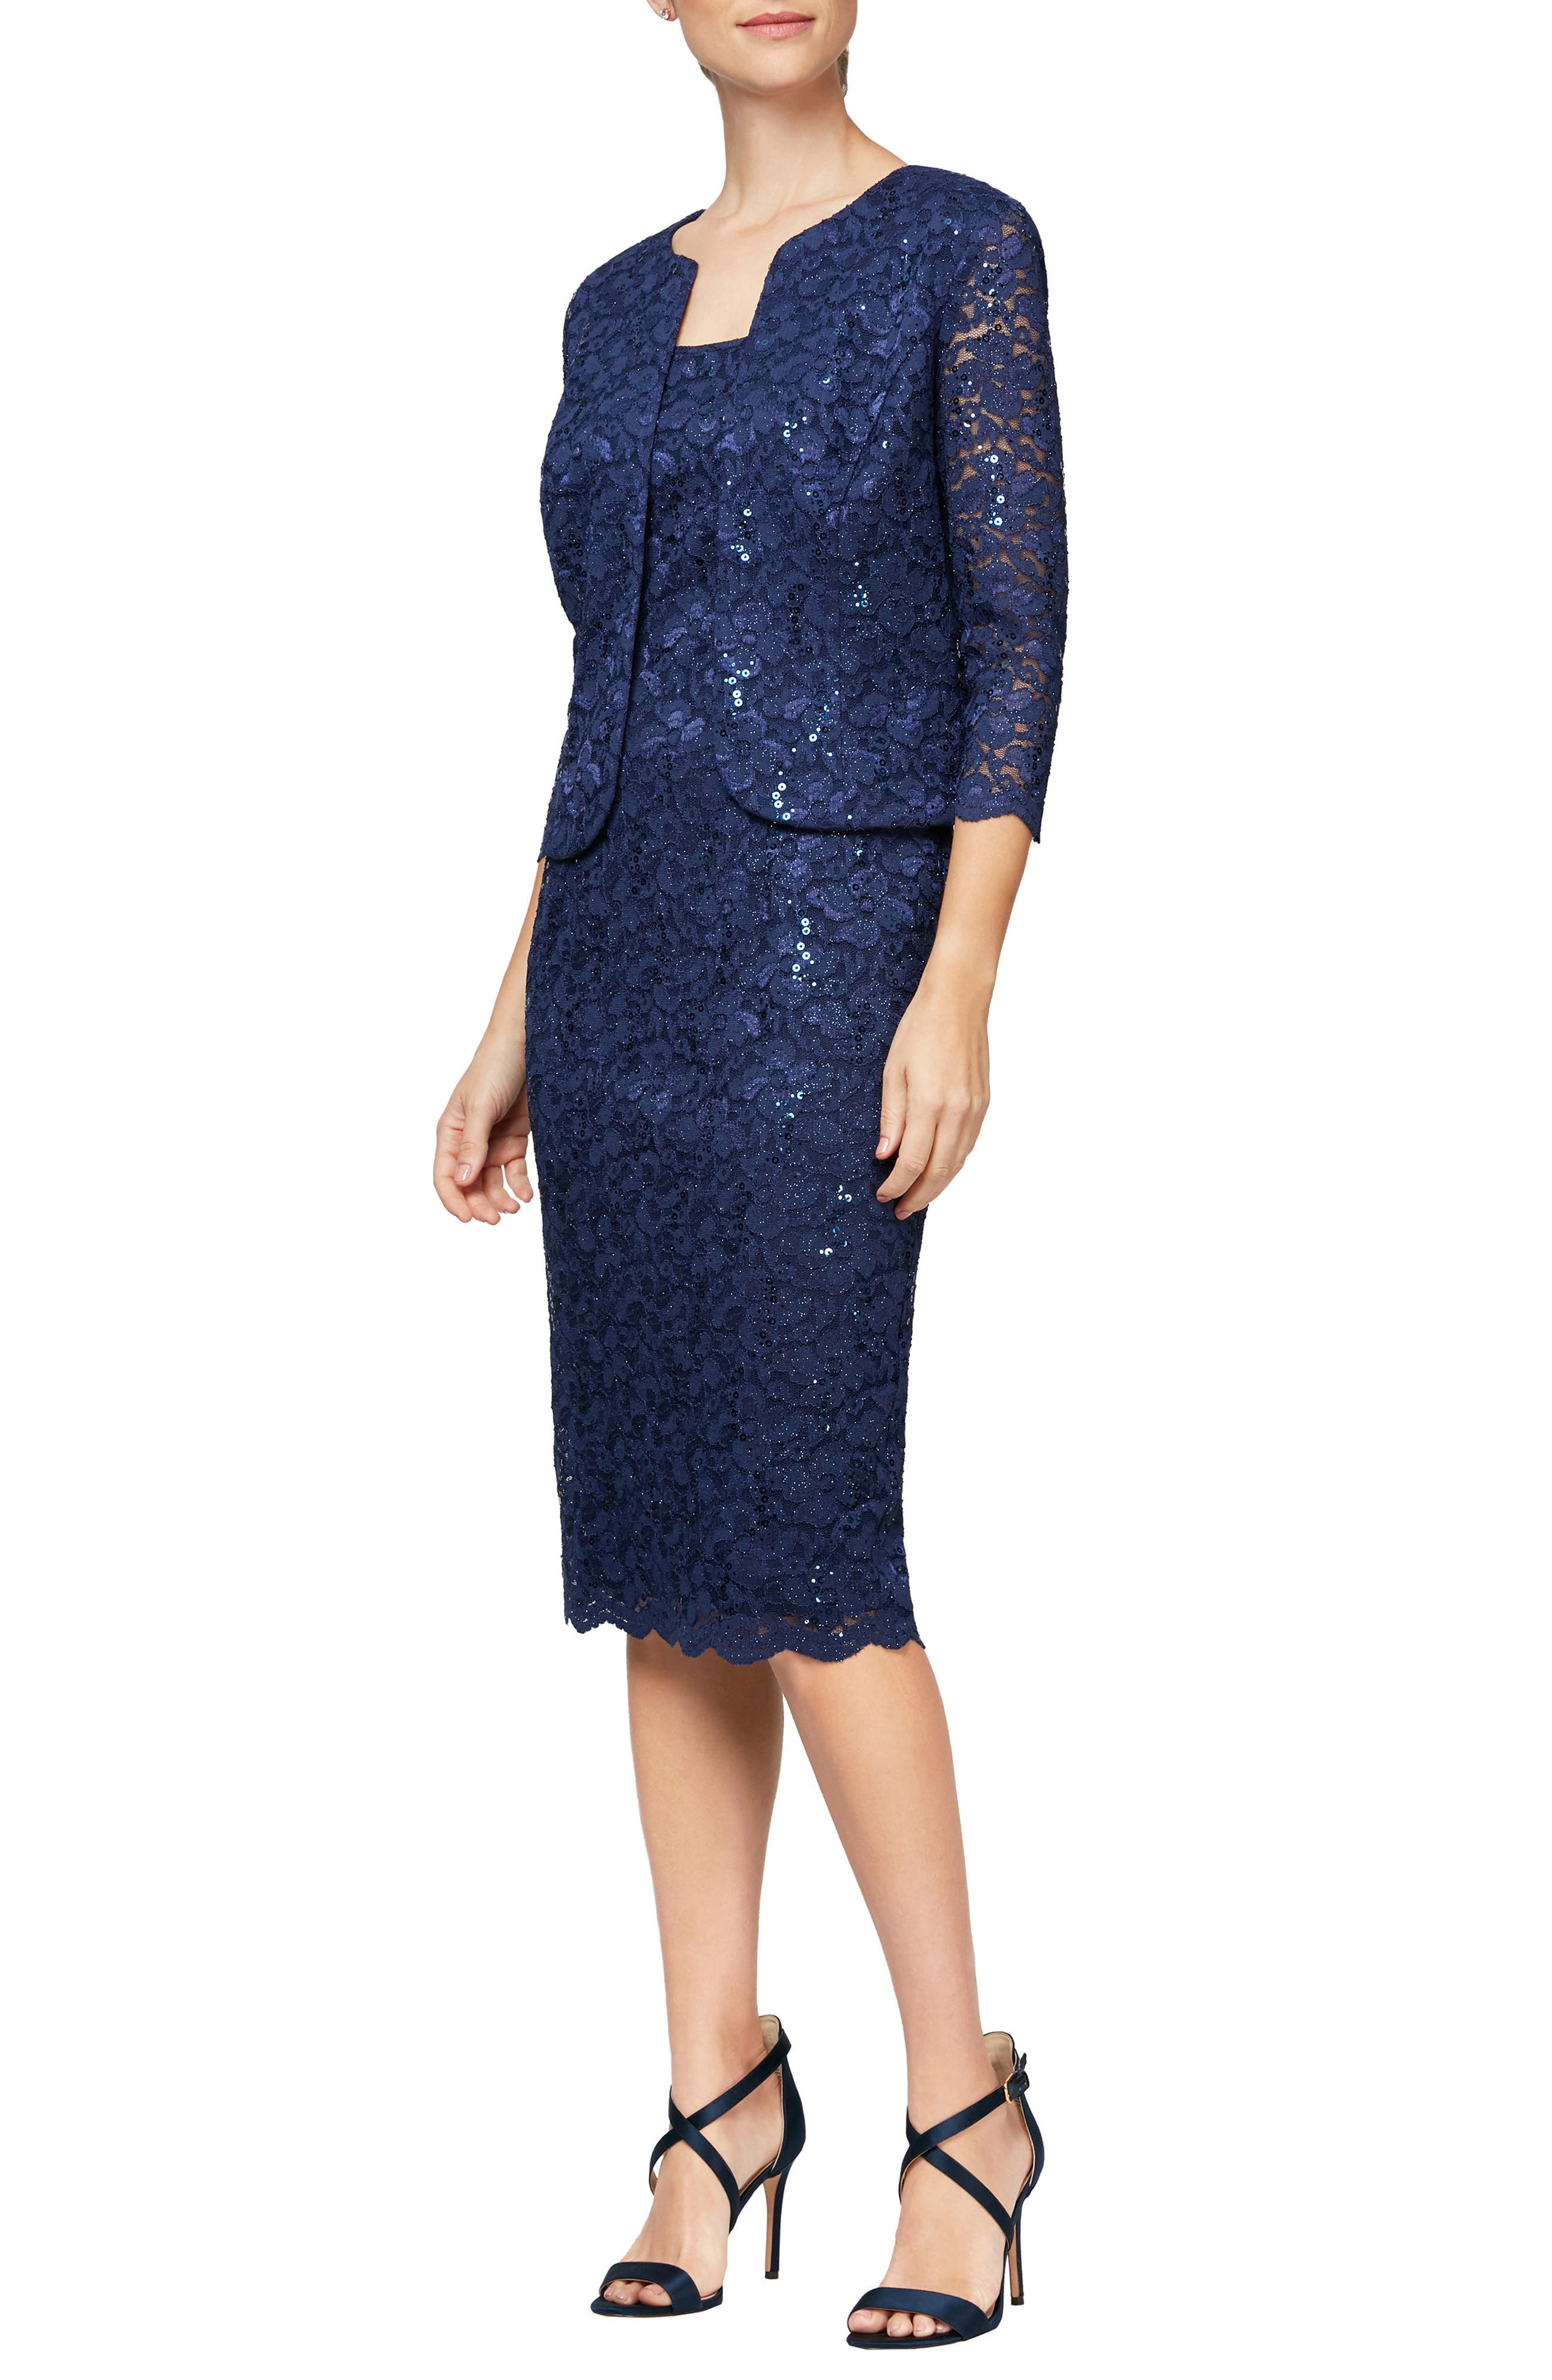 Sequin Lace Shift Dress With Jacket